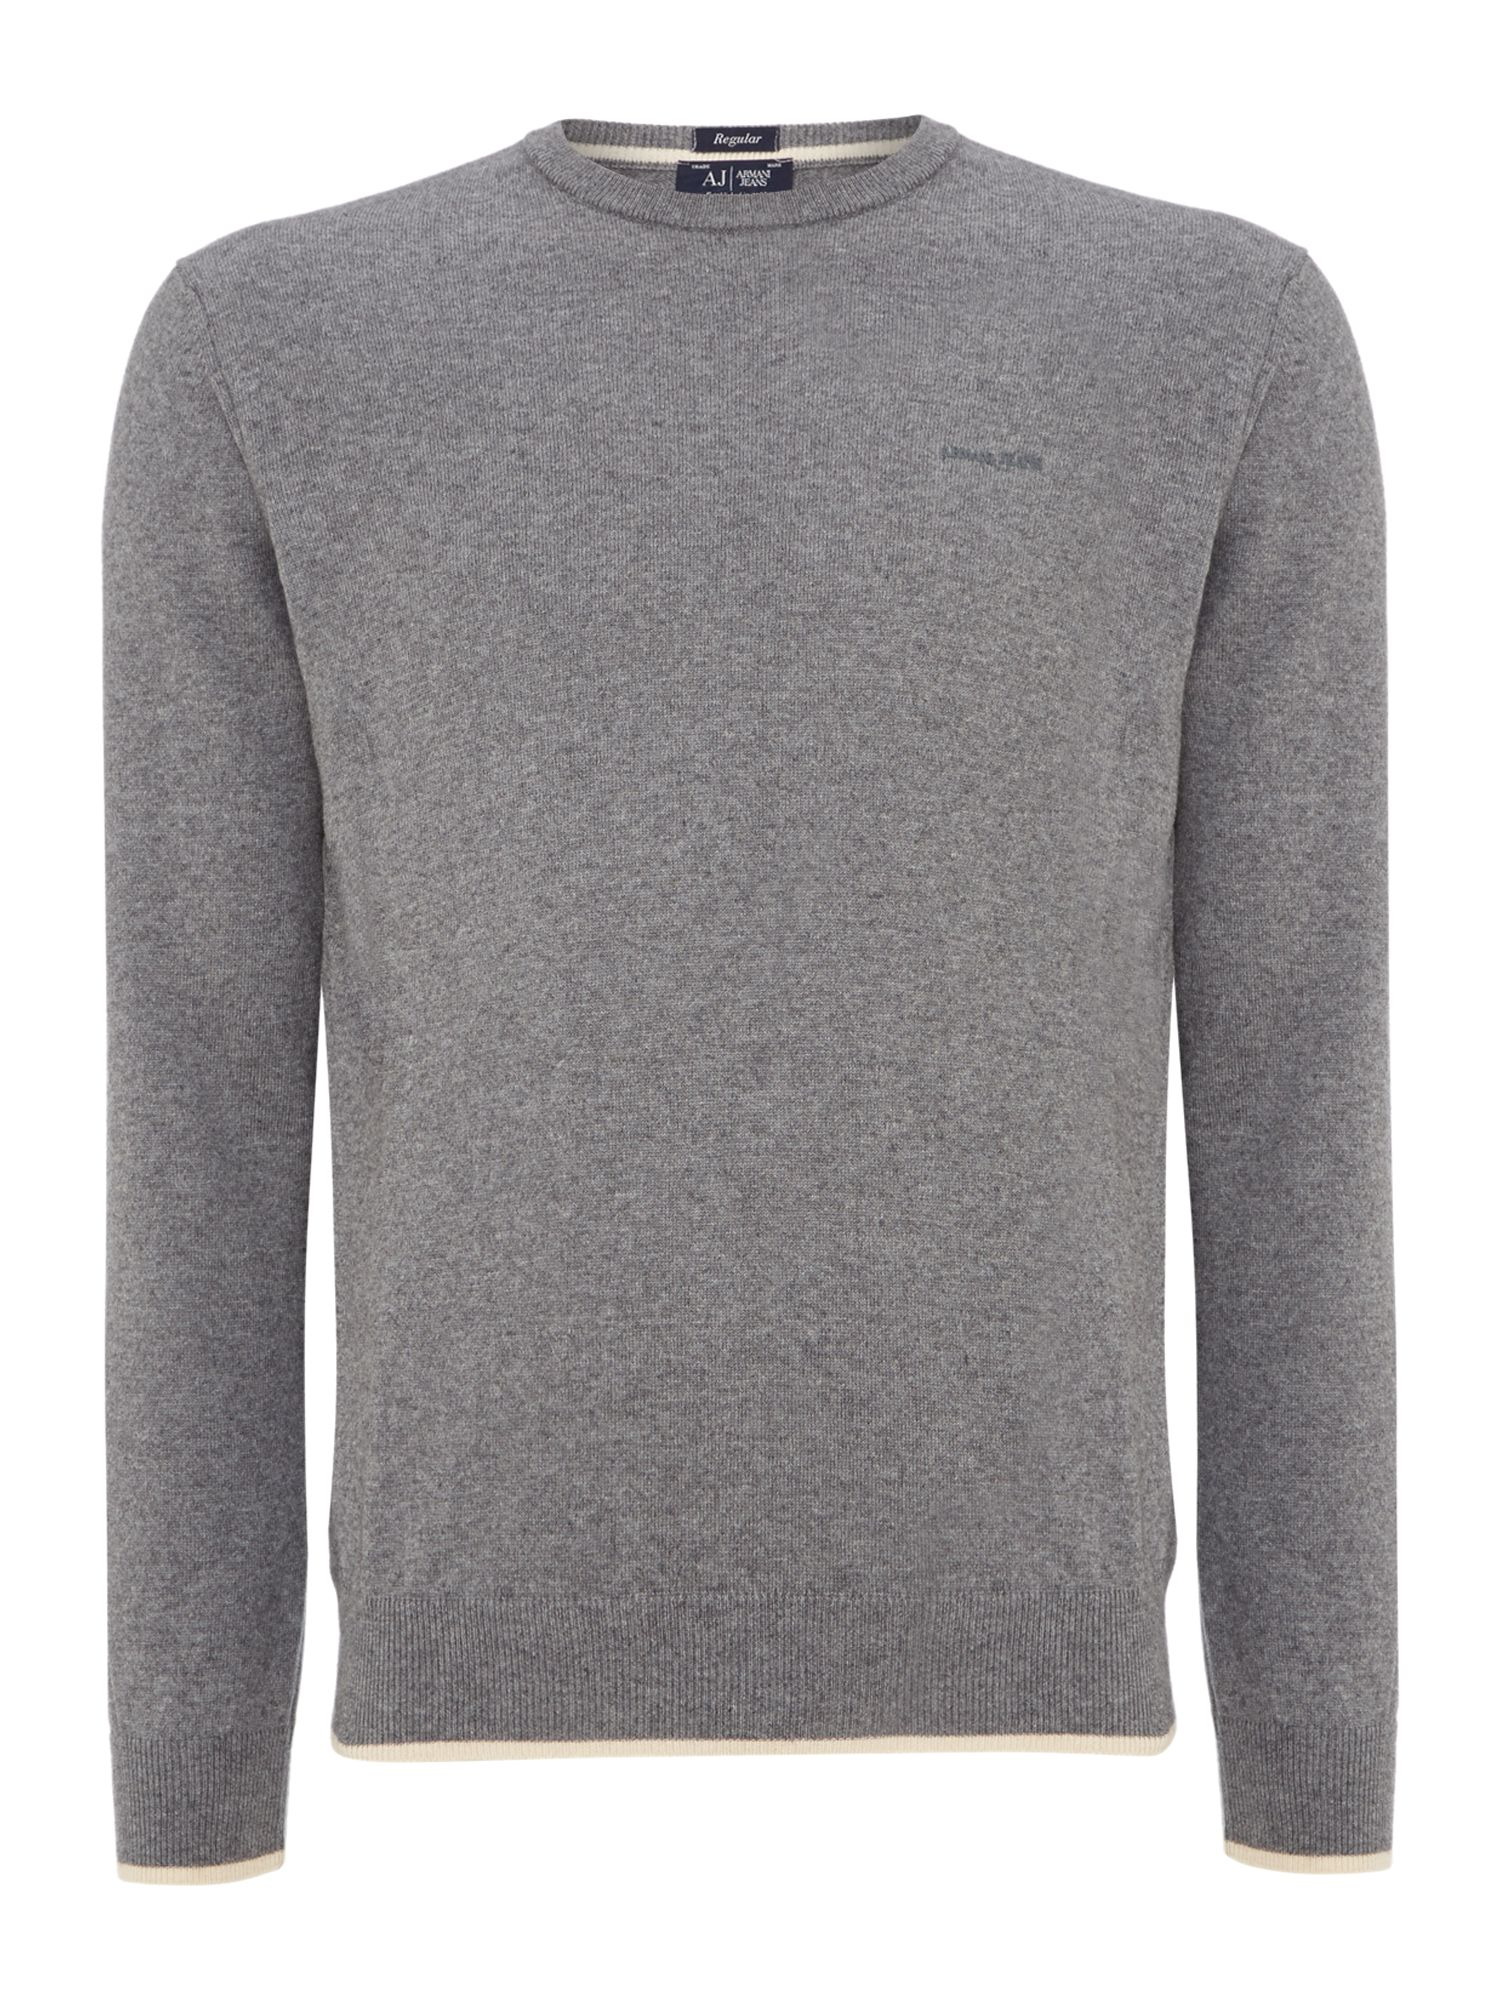 Armani Jeans Men's  Crew neck wool cotton mix jumper, Grey